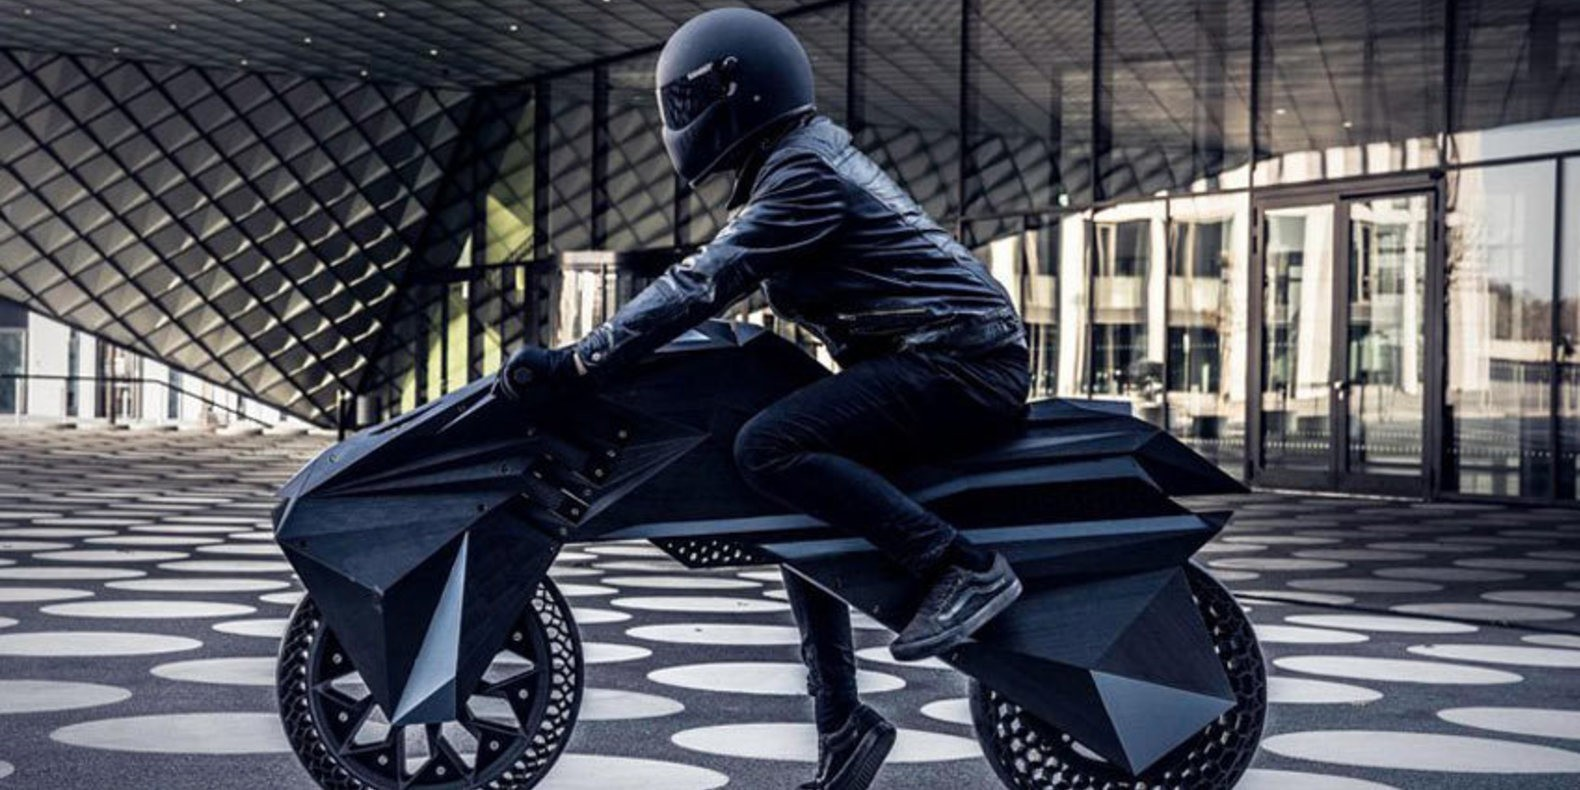 Moto: Nera, the first two-wheeler to be fully 3D printed 3D